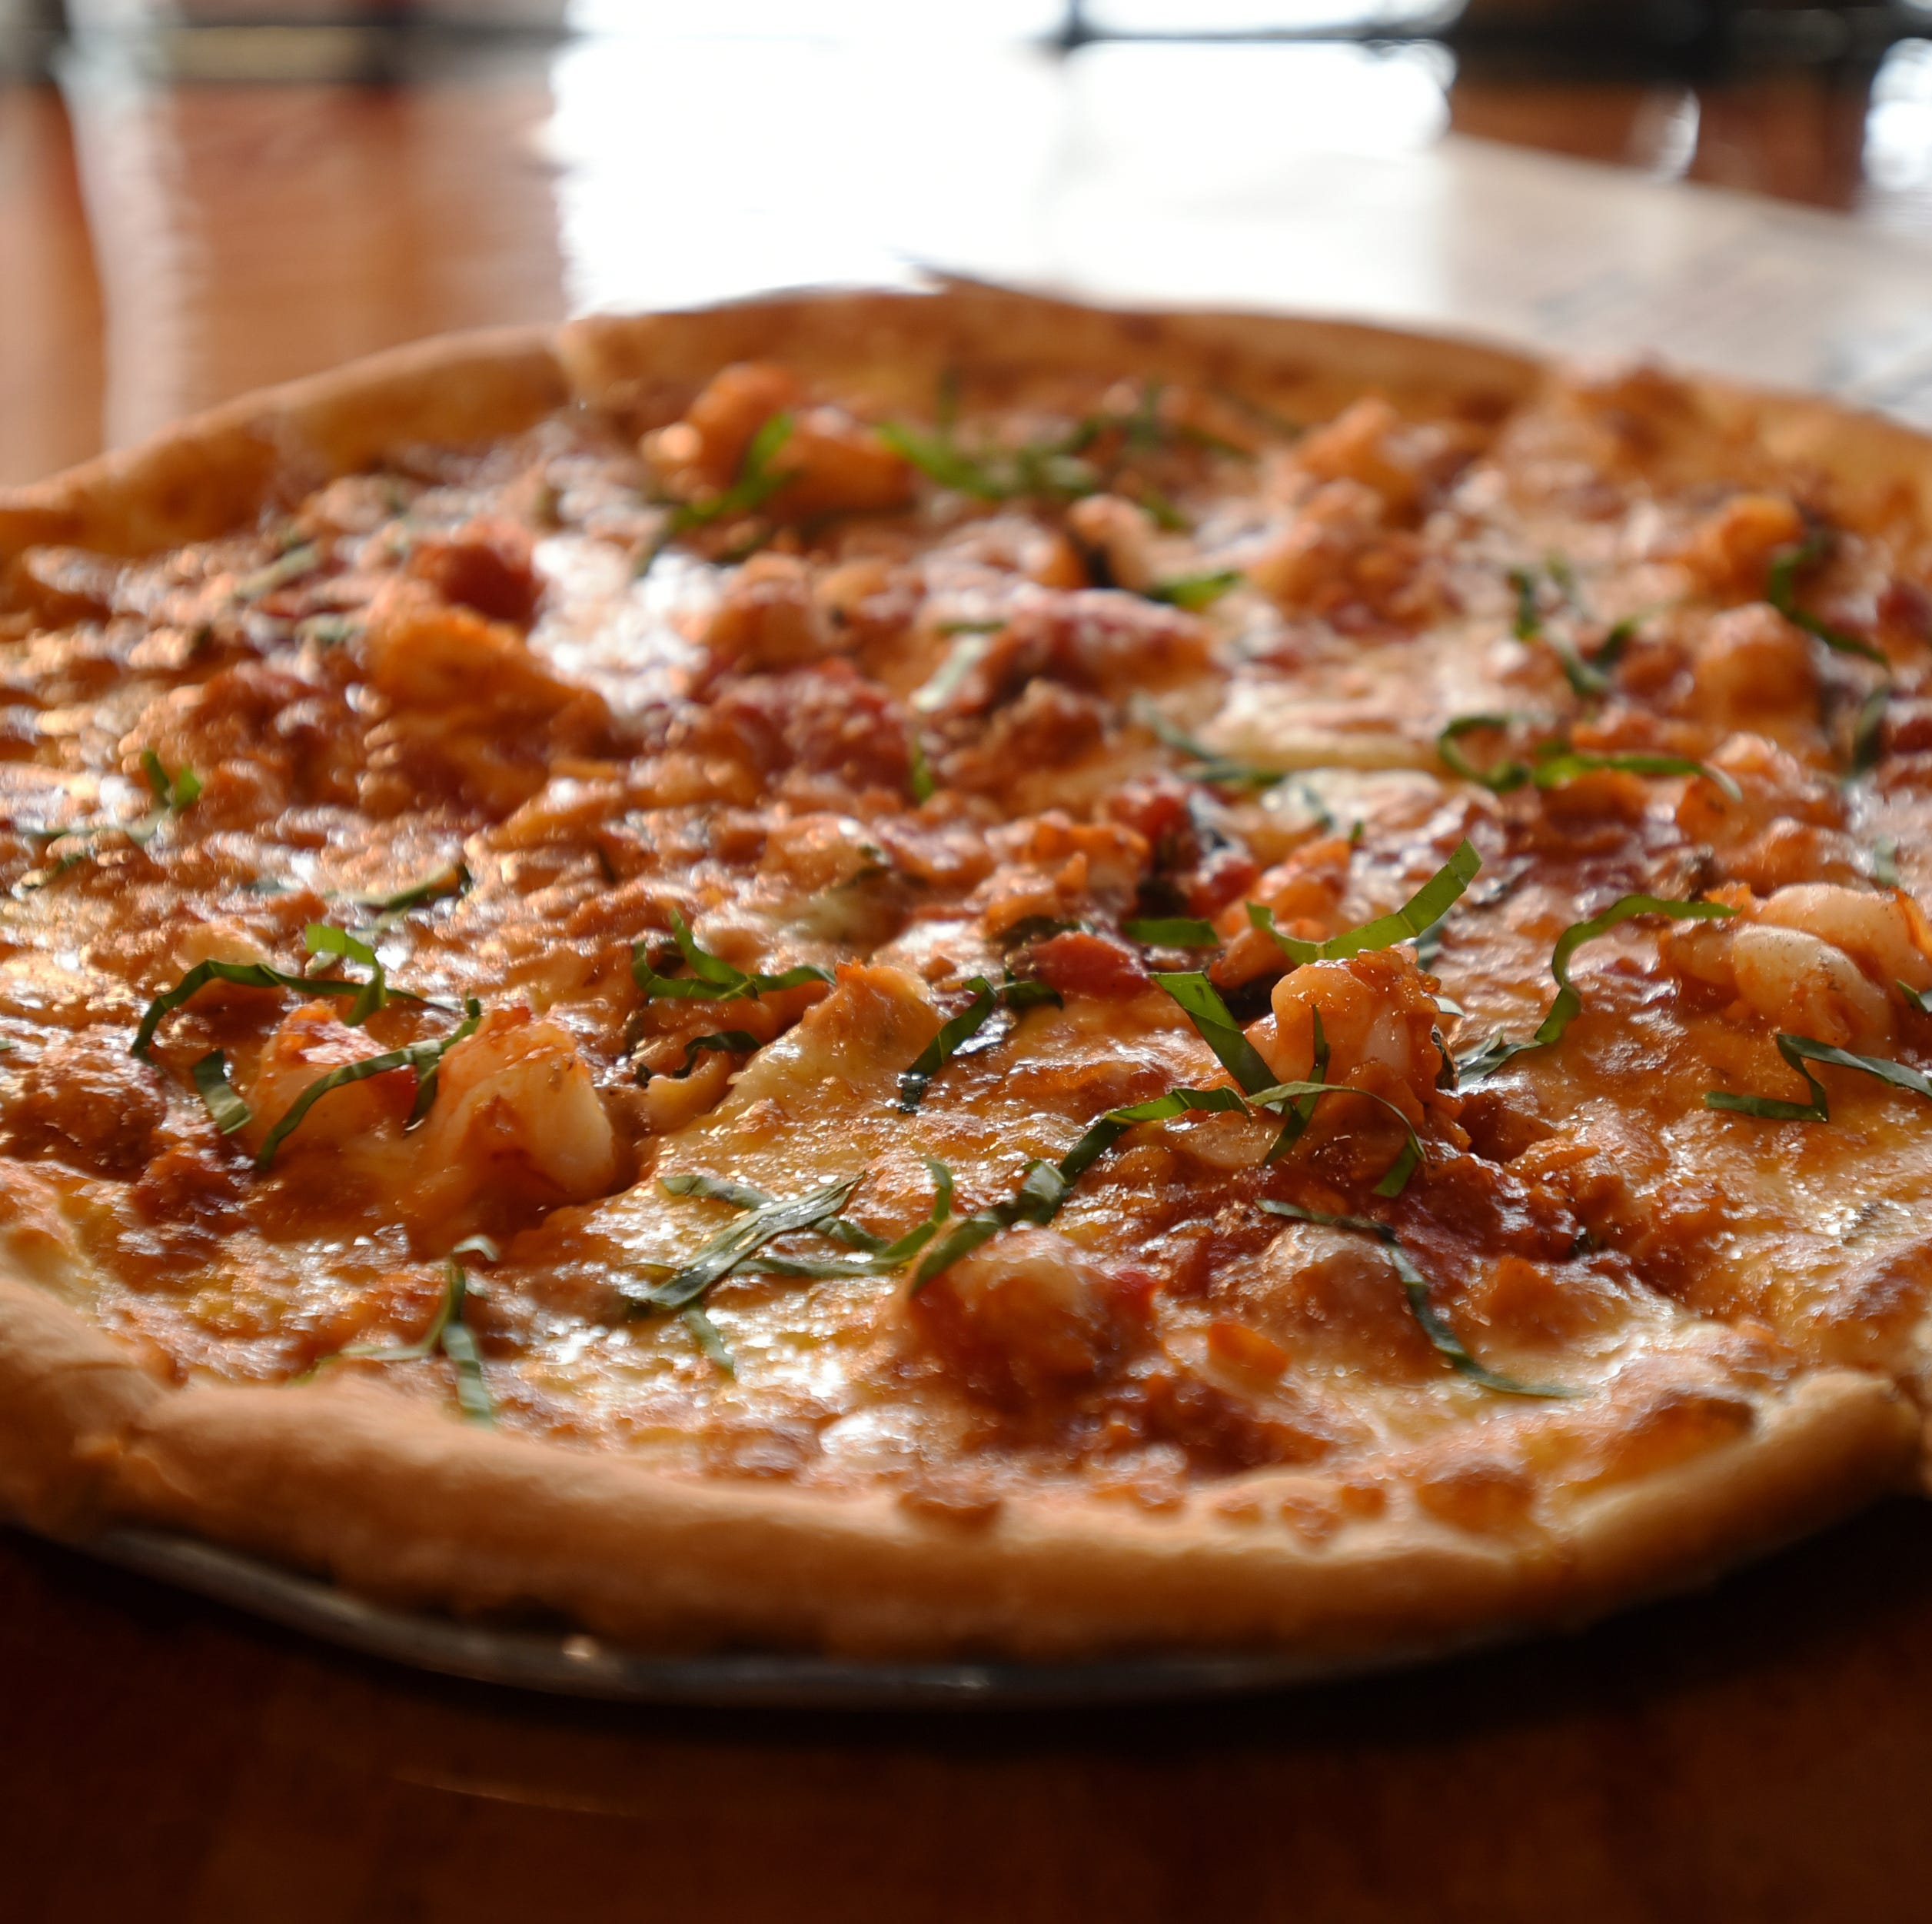 Friday Pie Day: Try the seafood pizza at Mahwah Pizza & Pasta